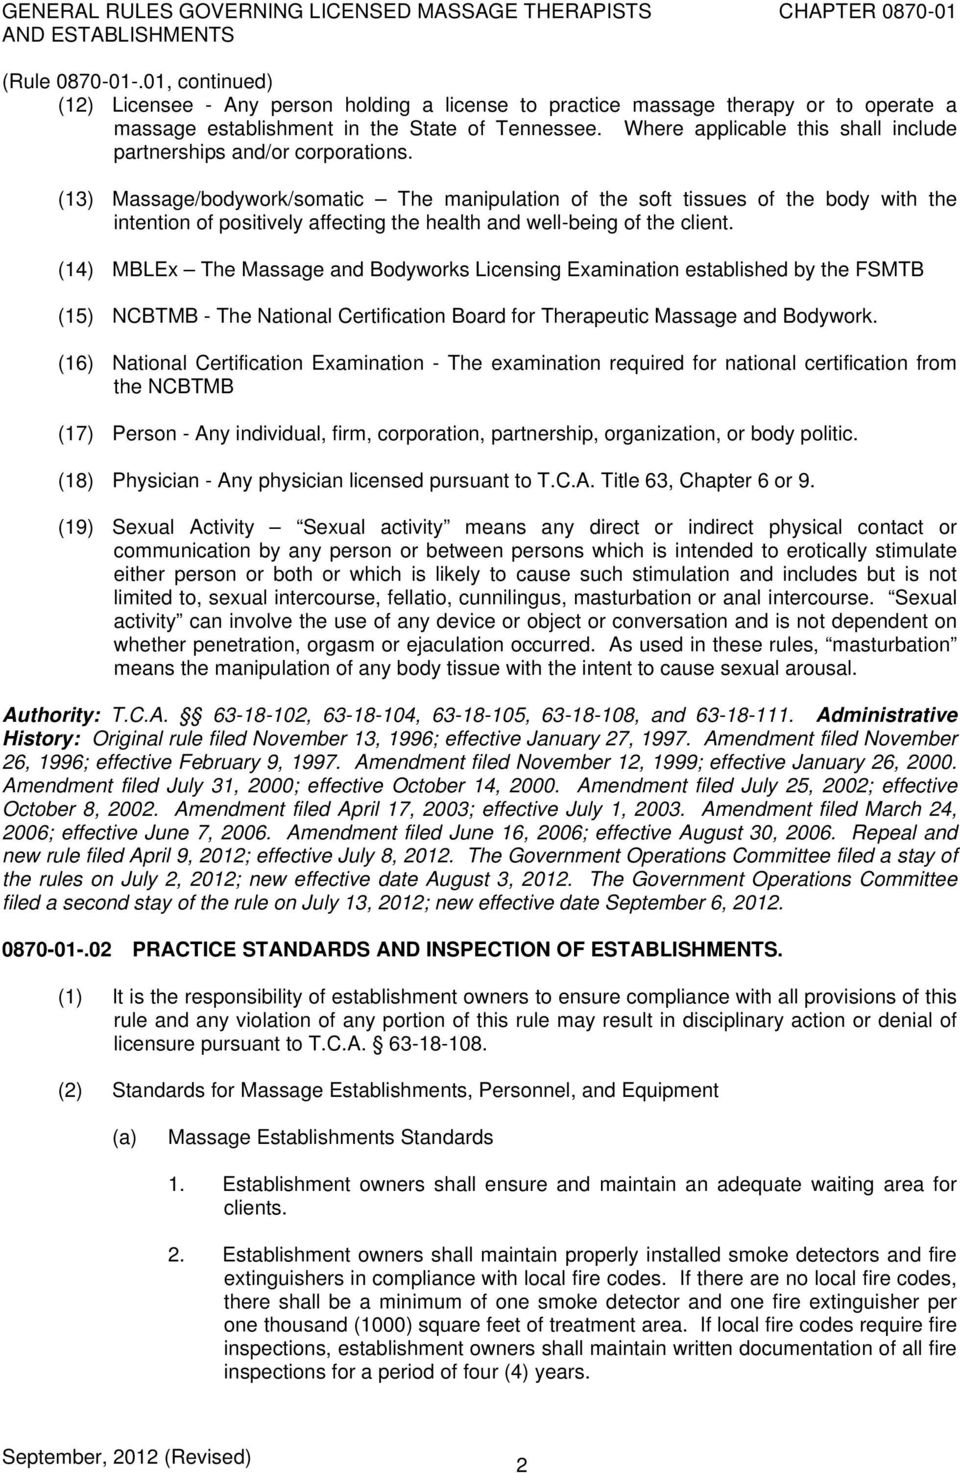 Rules Of Tennessee Massage Licensure Board Chapter General Rules